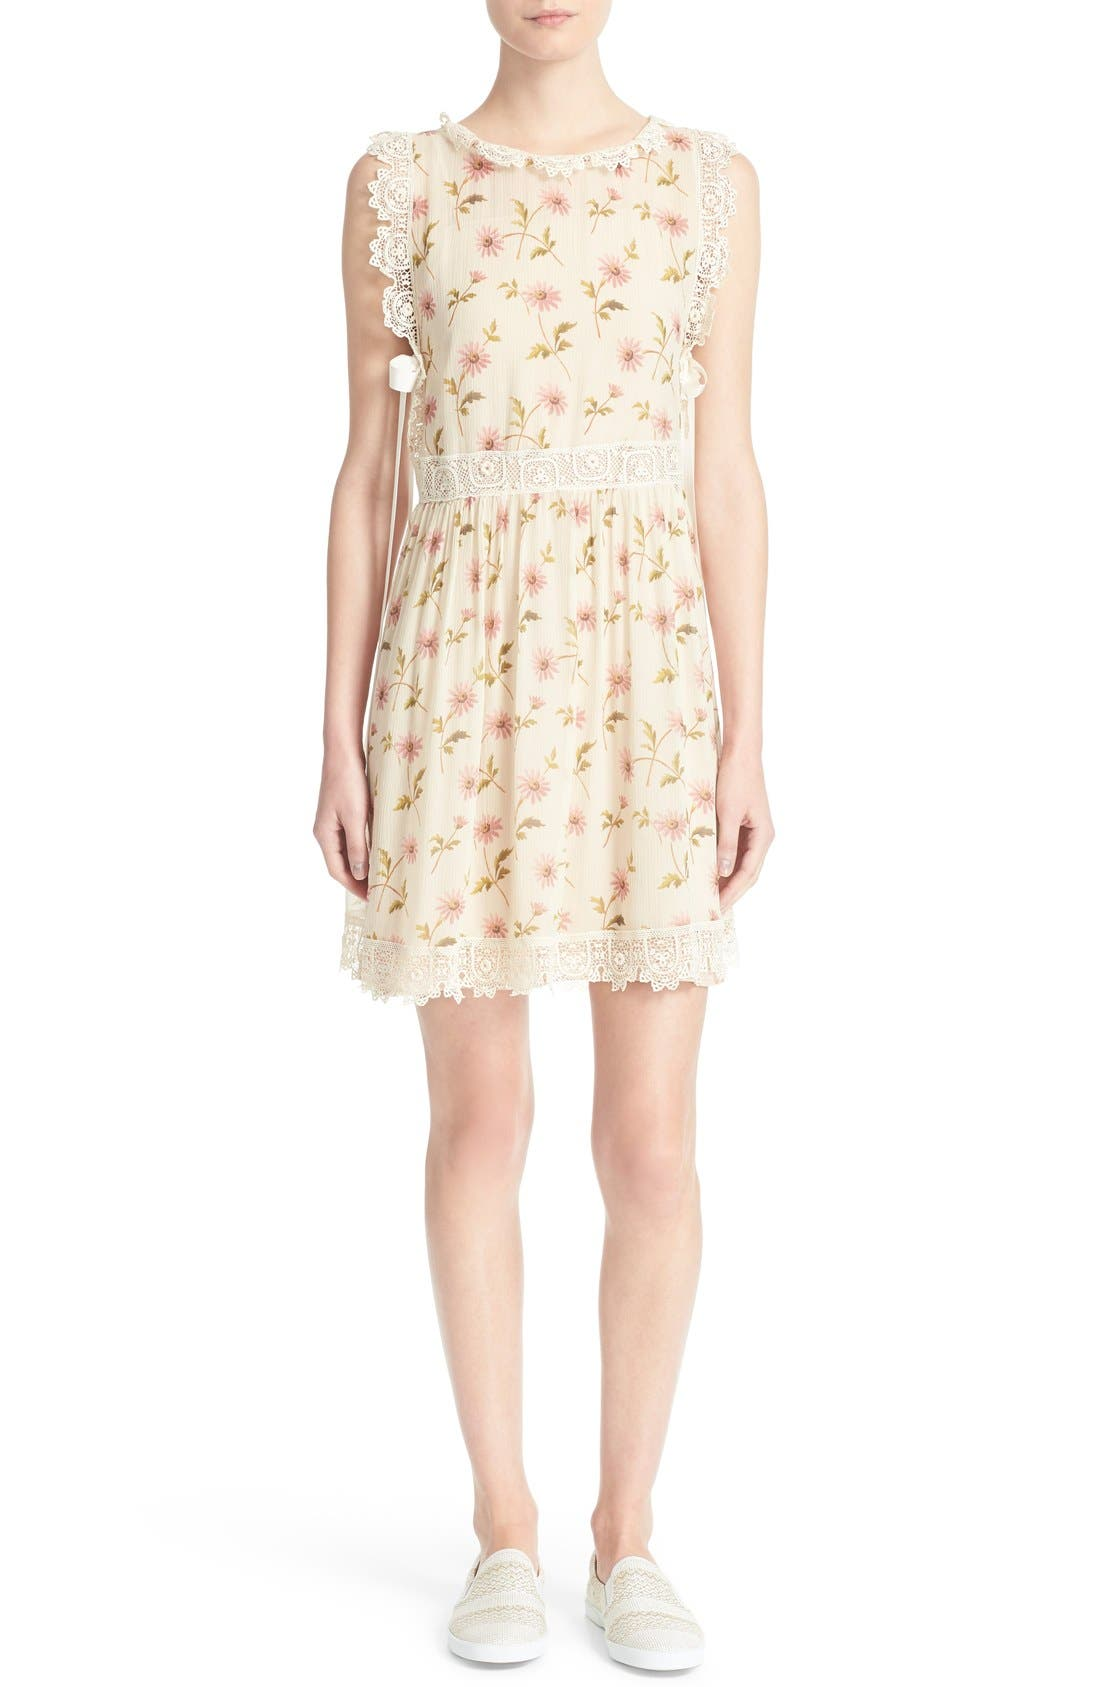 Alternate Image 1 Selected - RED Valentino Crochet Trim Daisy Print Dress